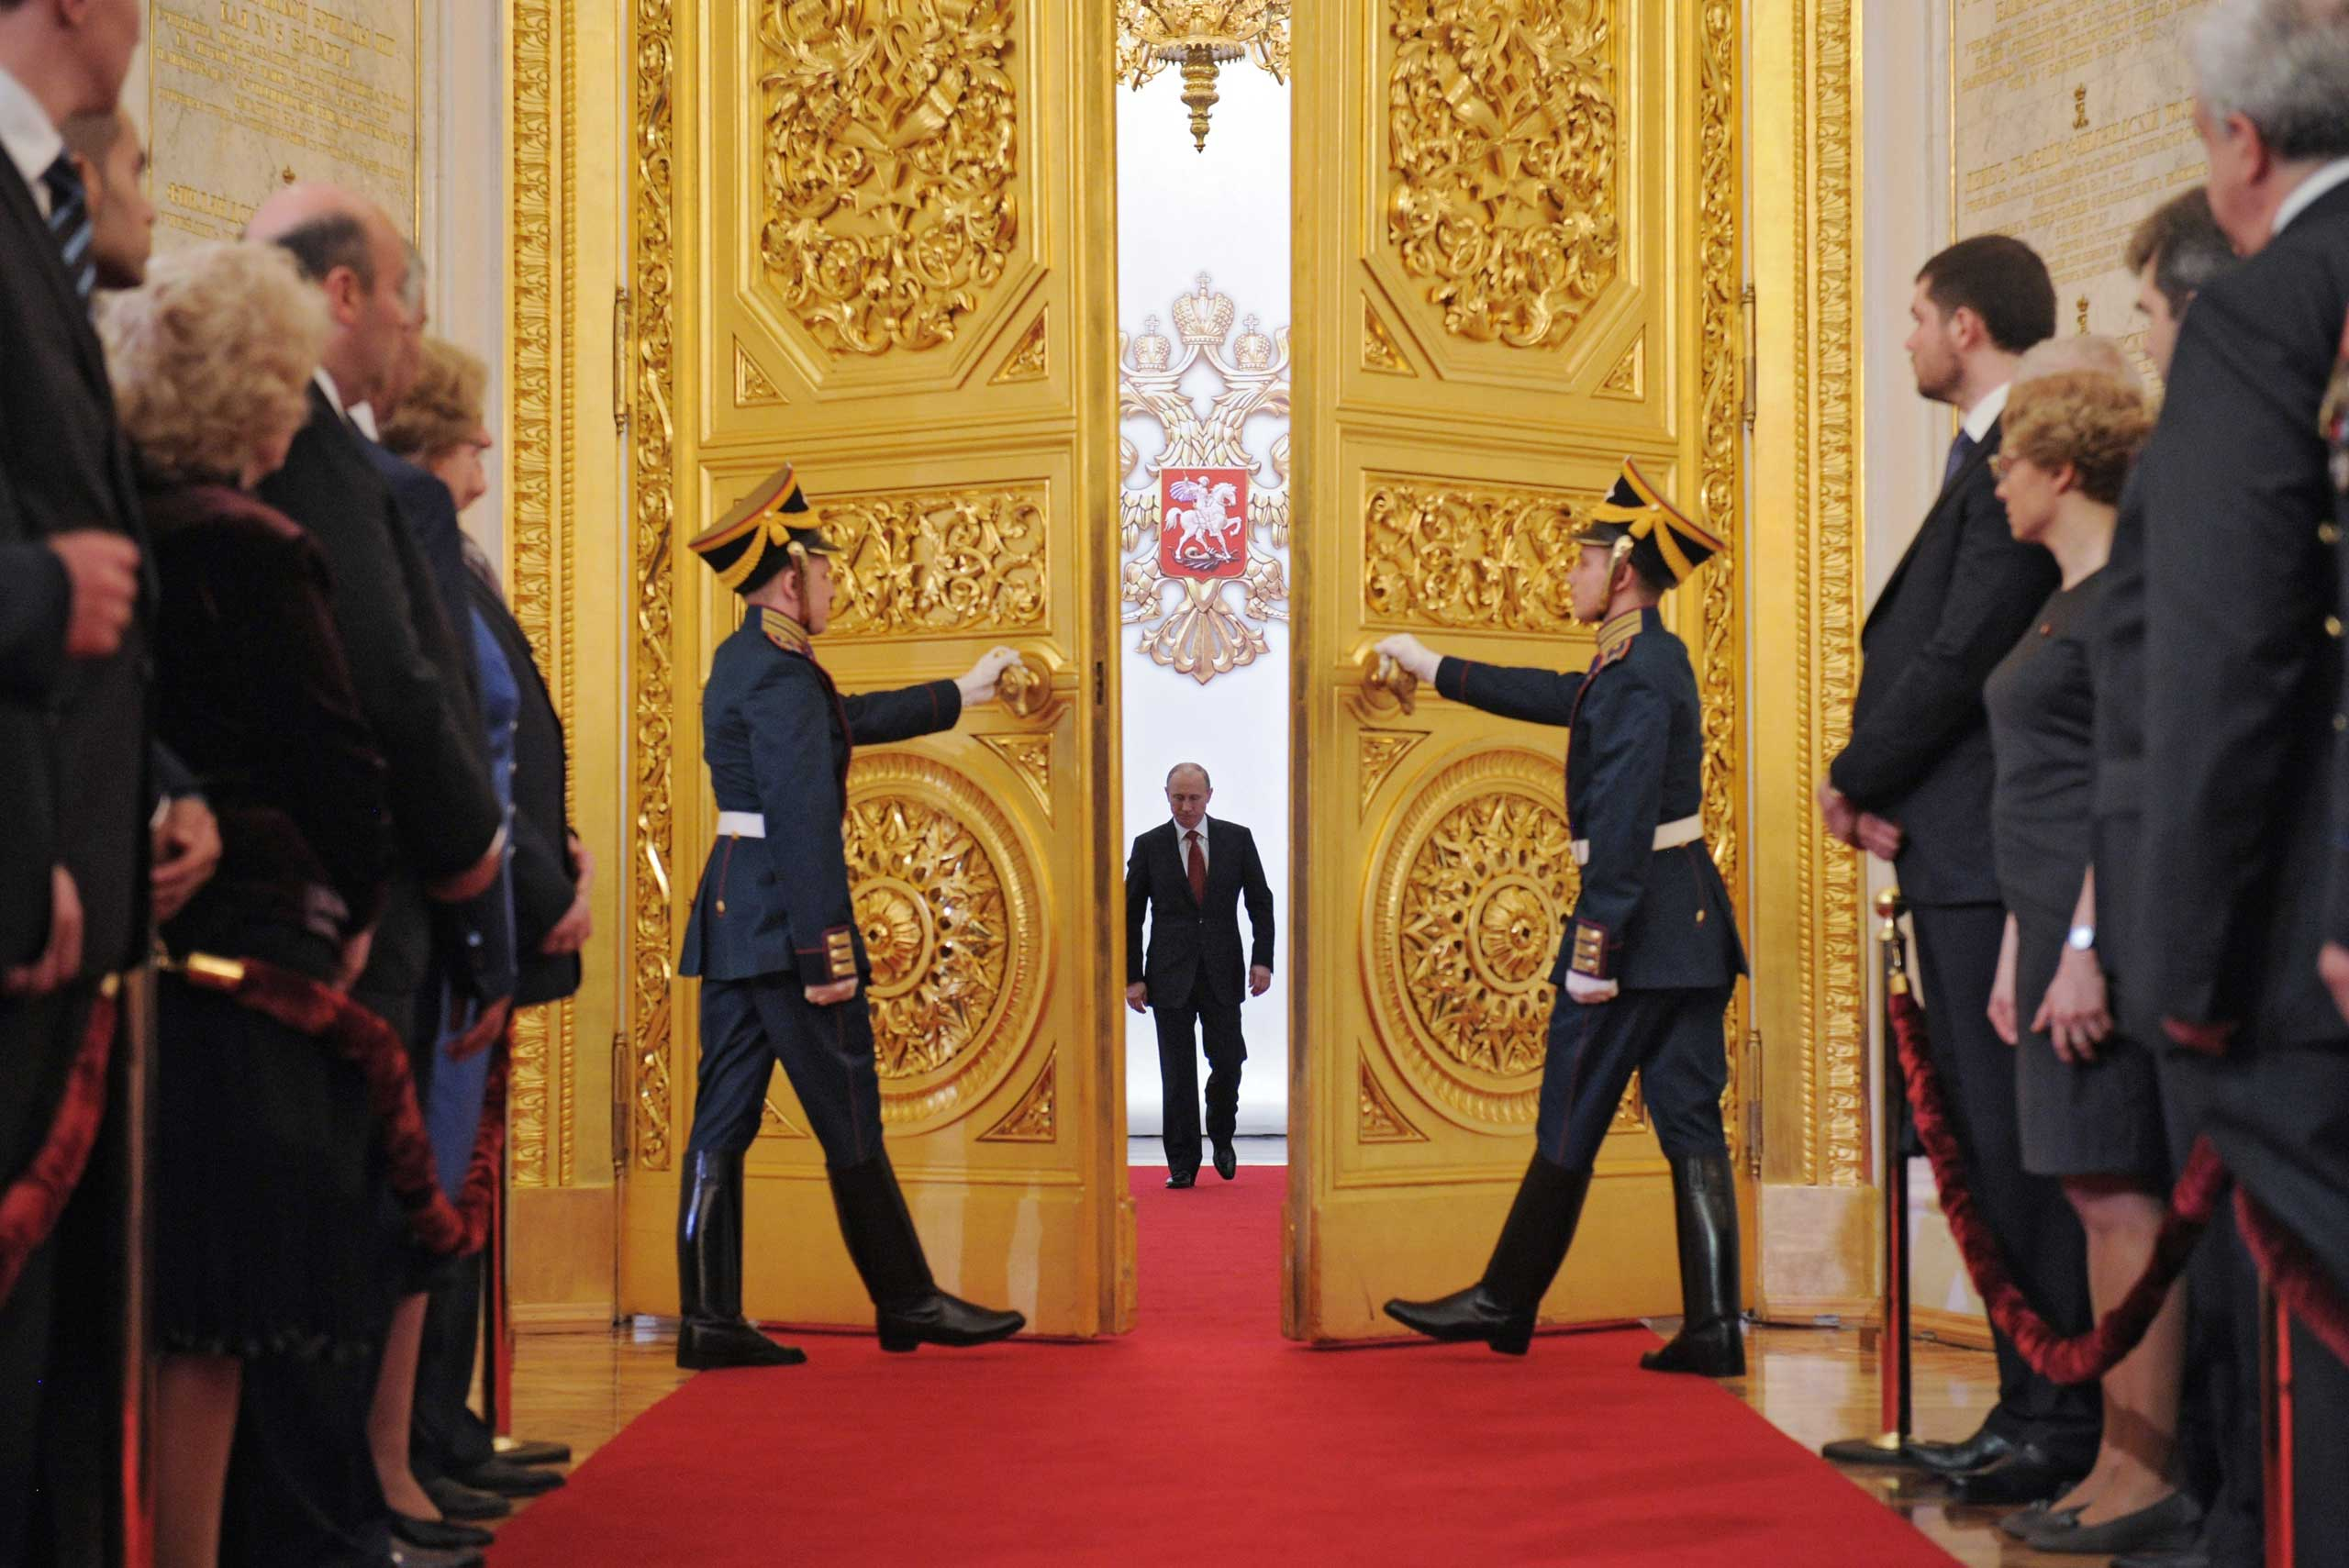 President Putin at the Great Kremlin Palace in Moscow on May 7, 2012, during his inauguration ceremony.